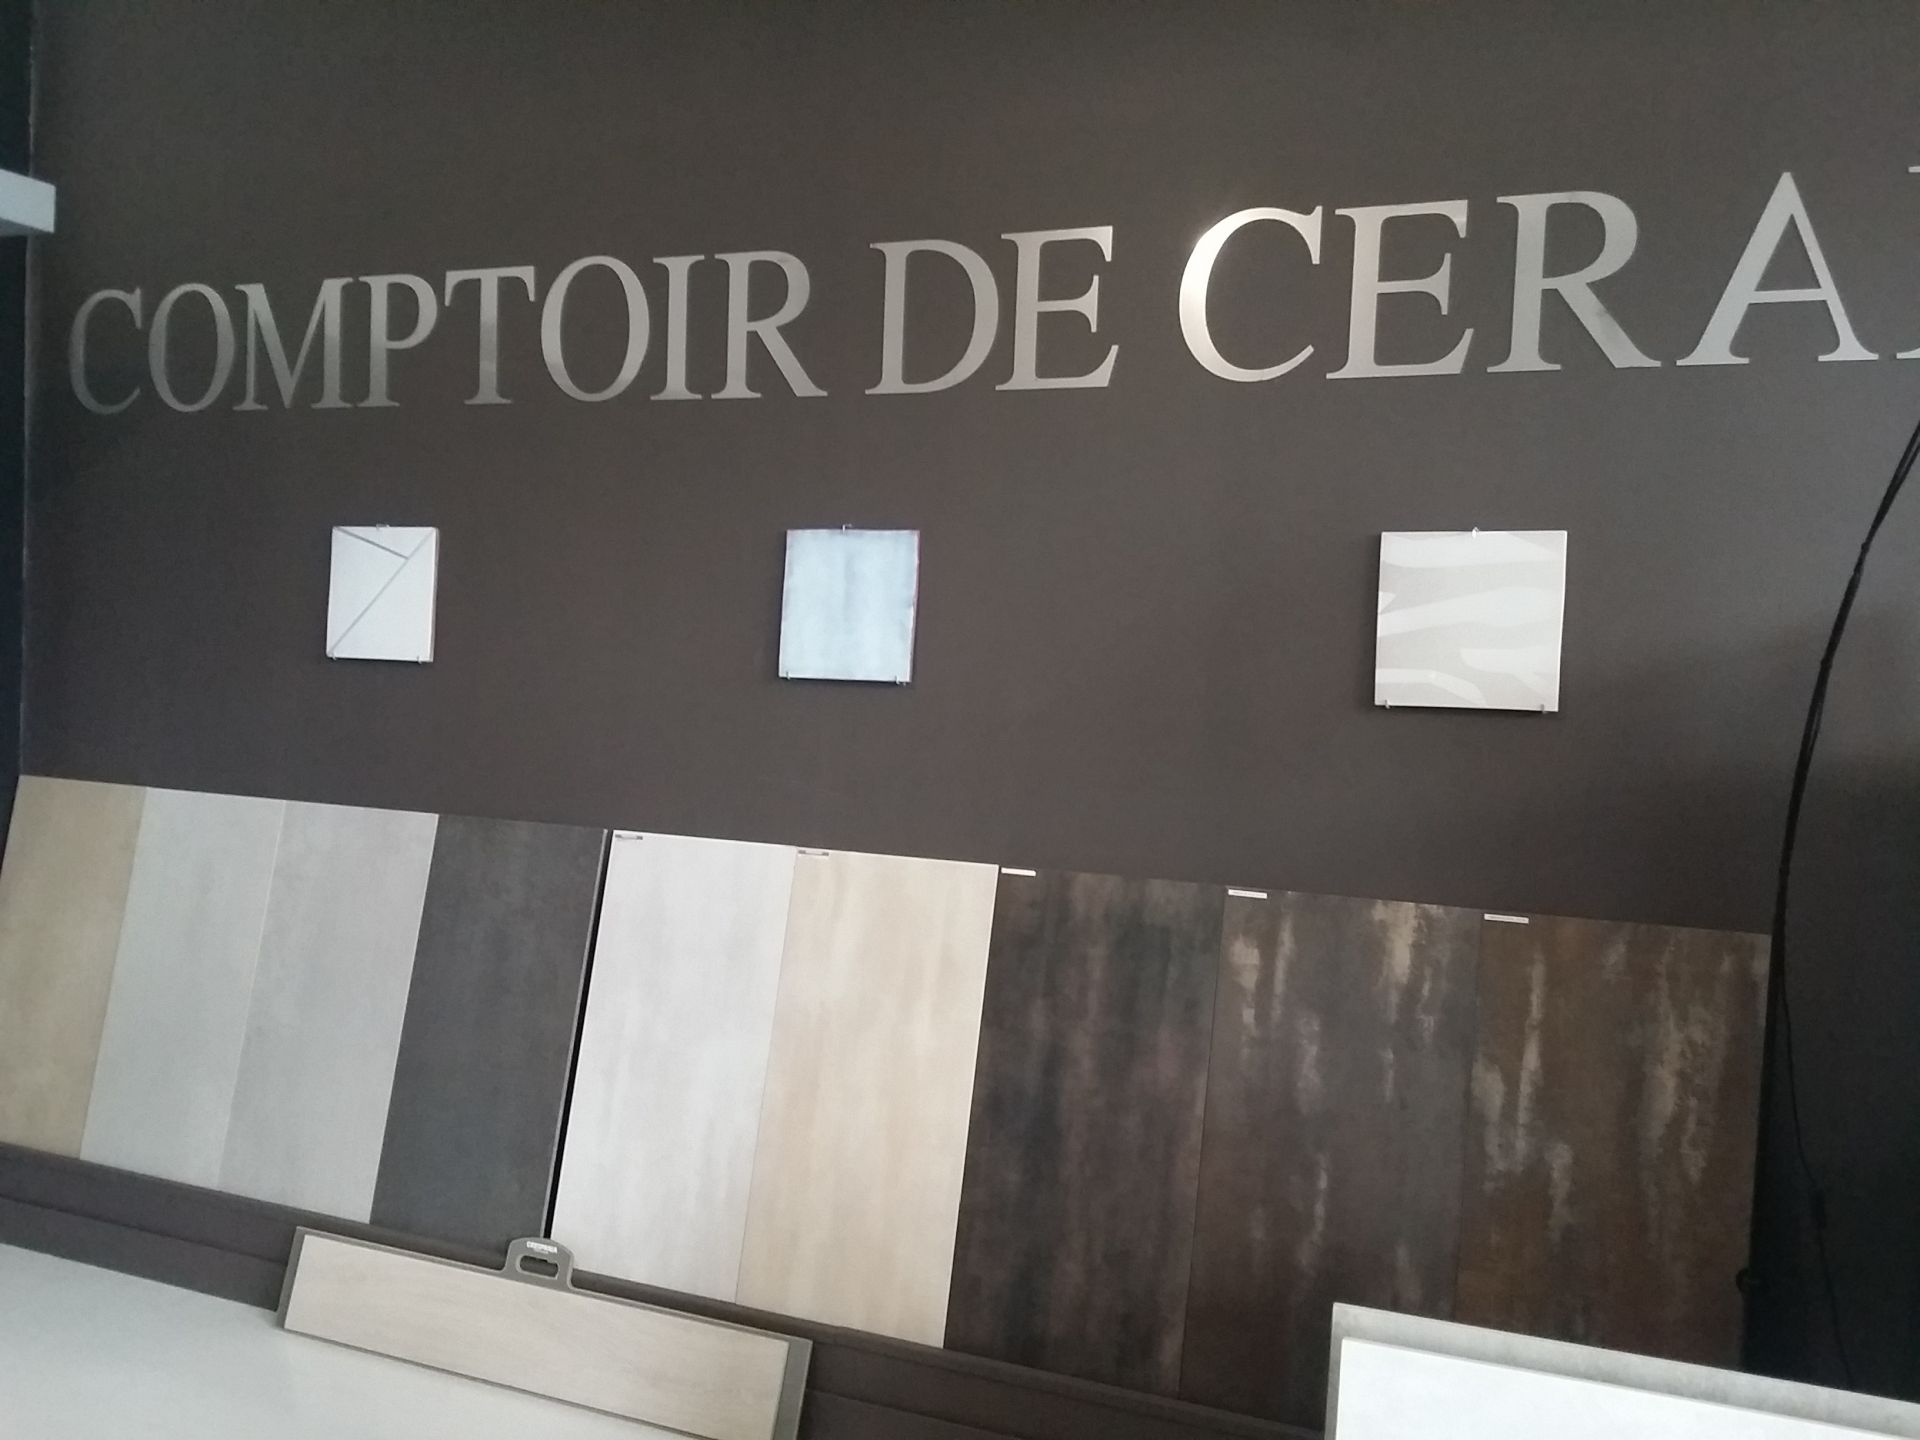 SHOWROOM MAGASIN DE CARRELAGE LE COMPTOIR DE CERAM A JACOU DANS LE 34